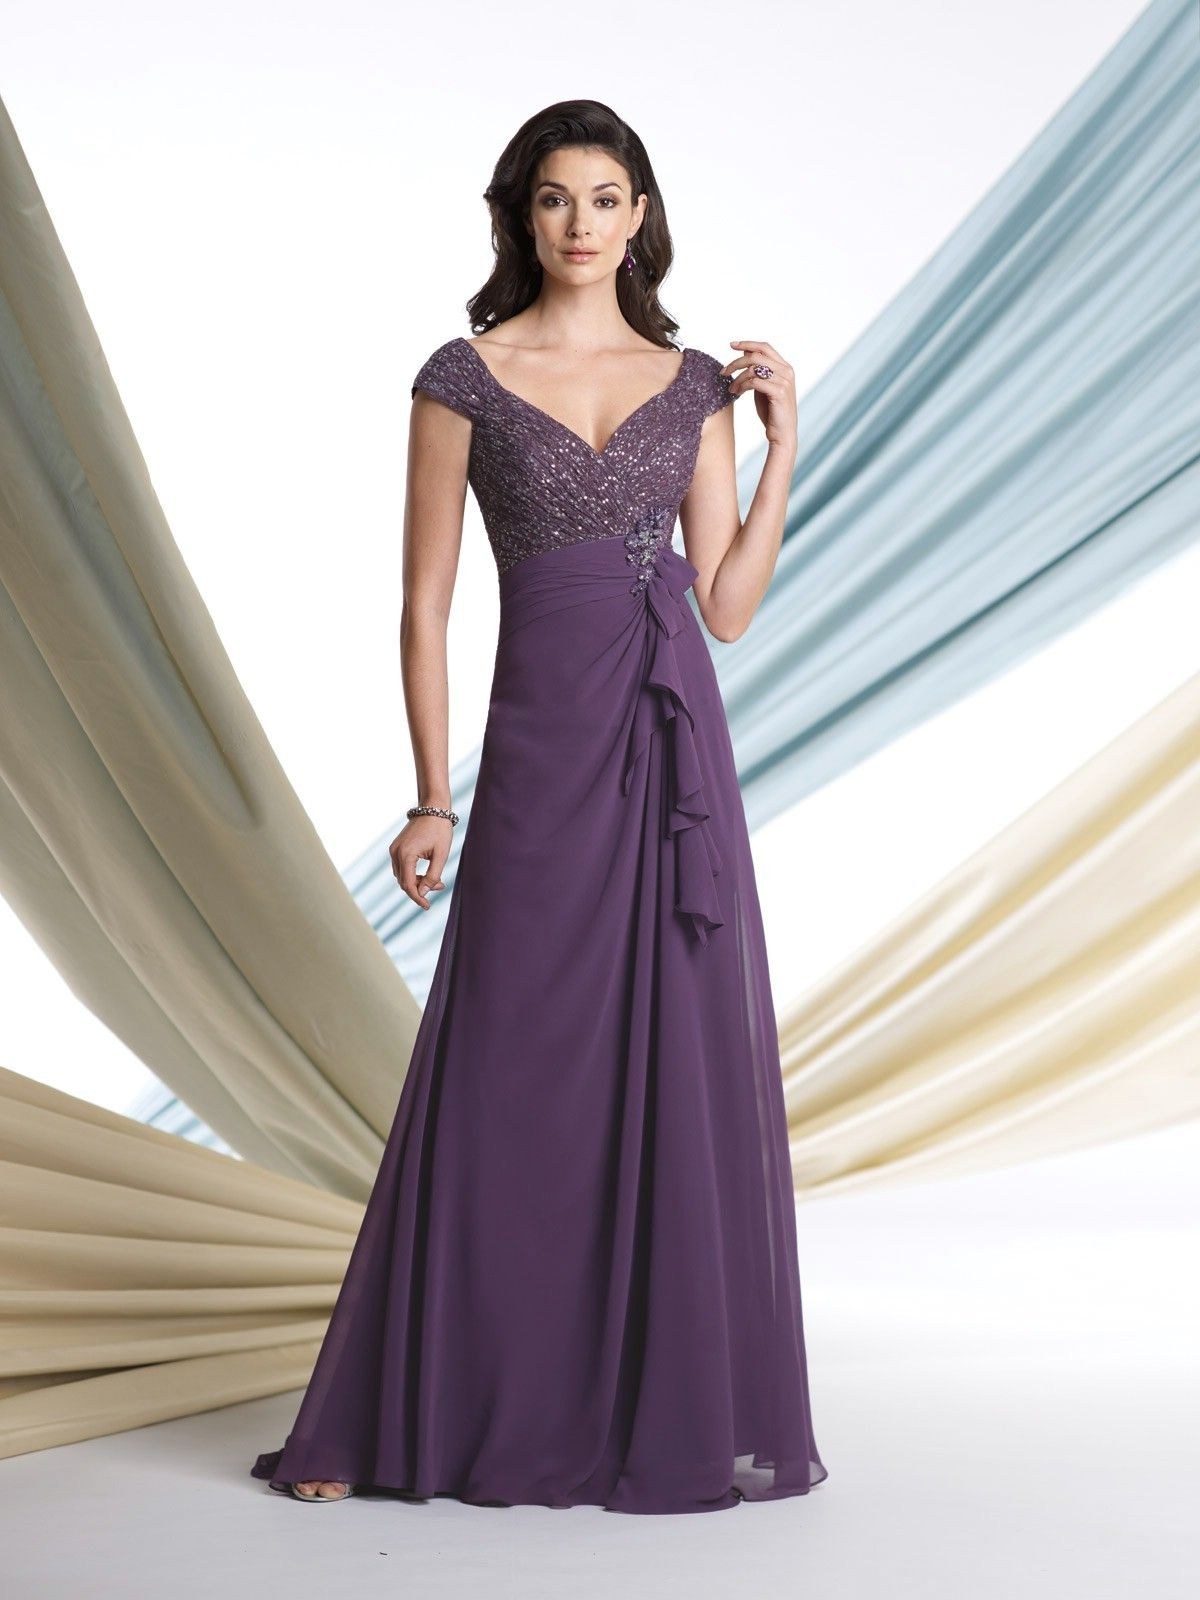 Wedding dresses for mother of the bride  Montage  Style      Wedding Dresses